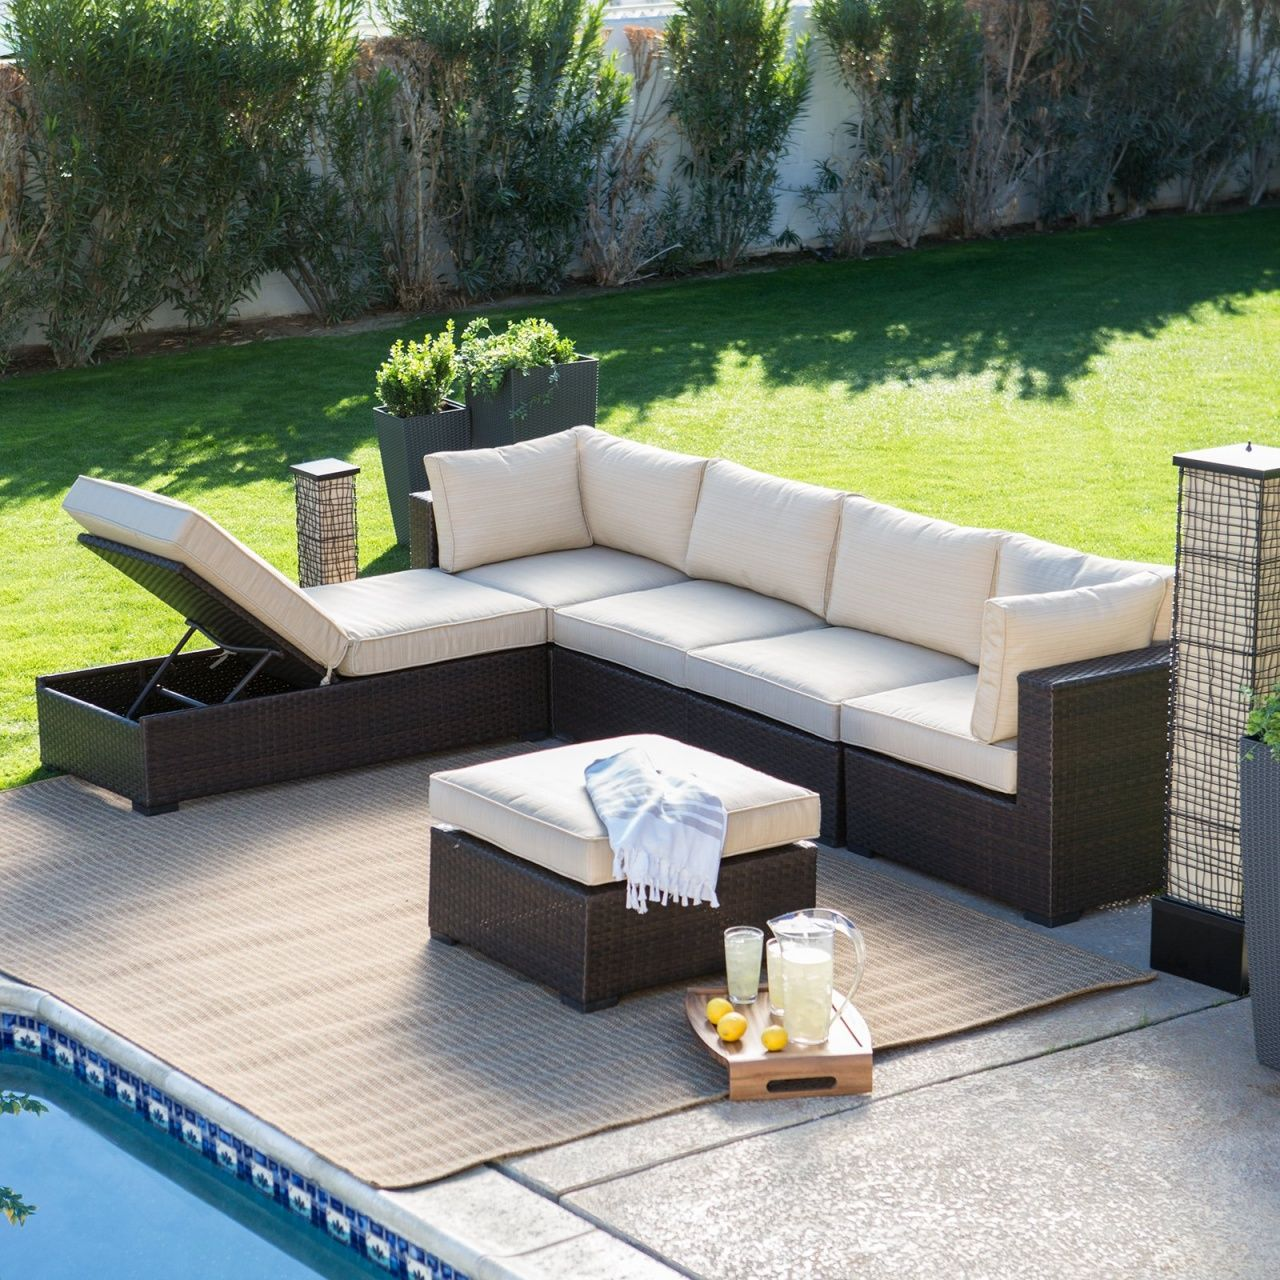 Jcpenney Patio Furniture Clearance 70 Off In 2020 Big Lots Patio Furniture Clearance Patio